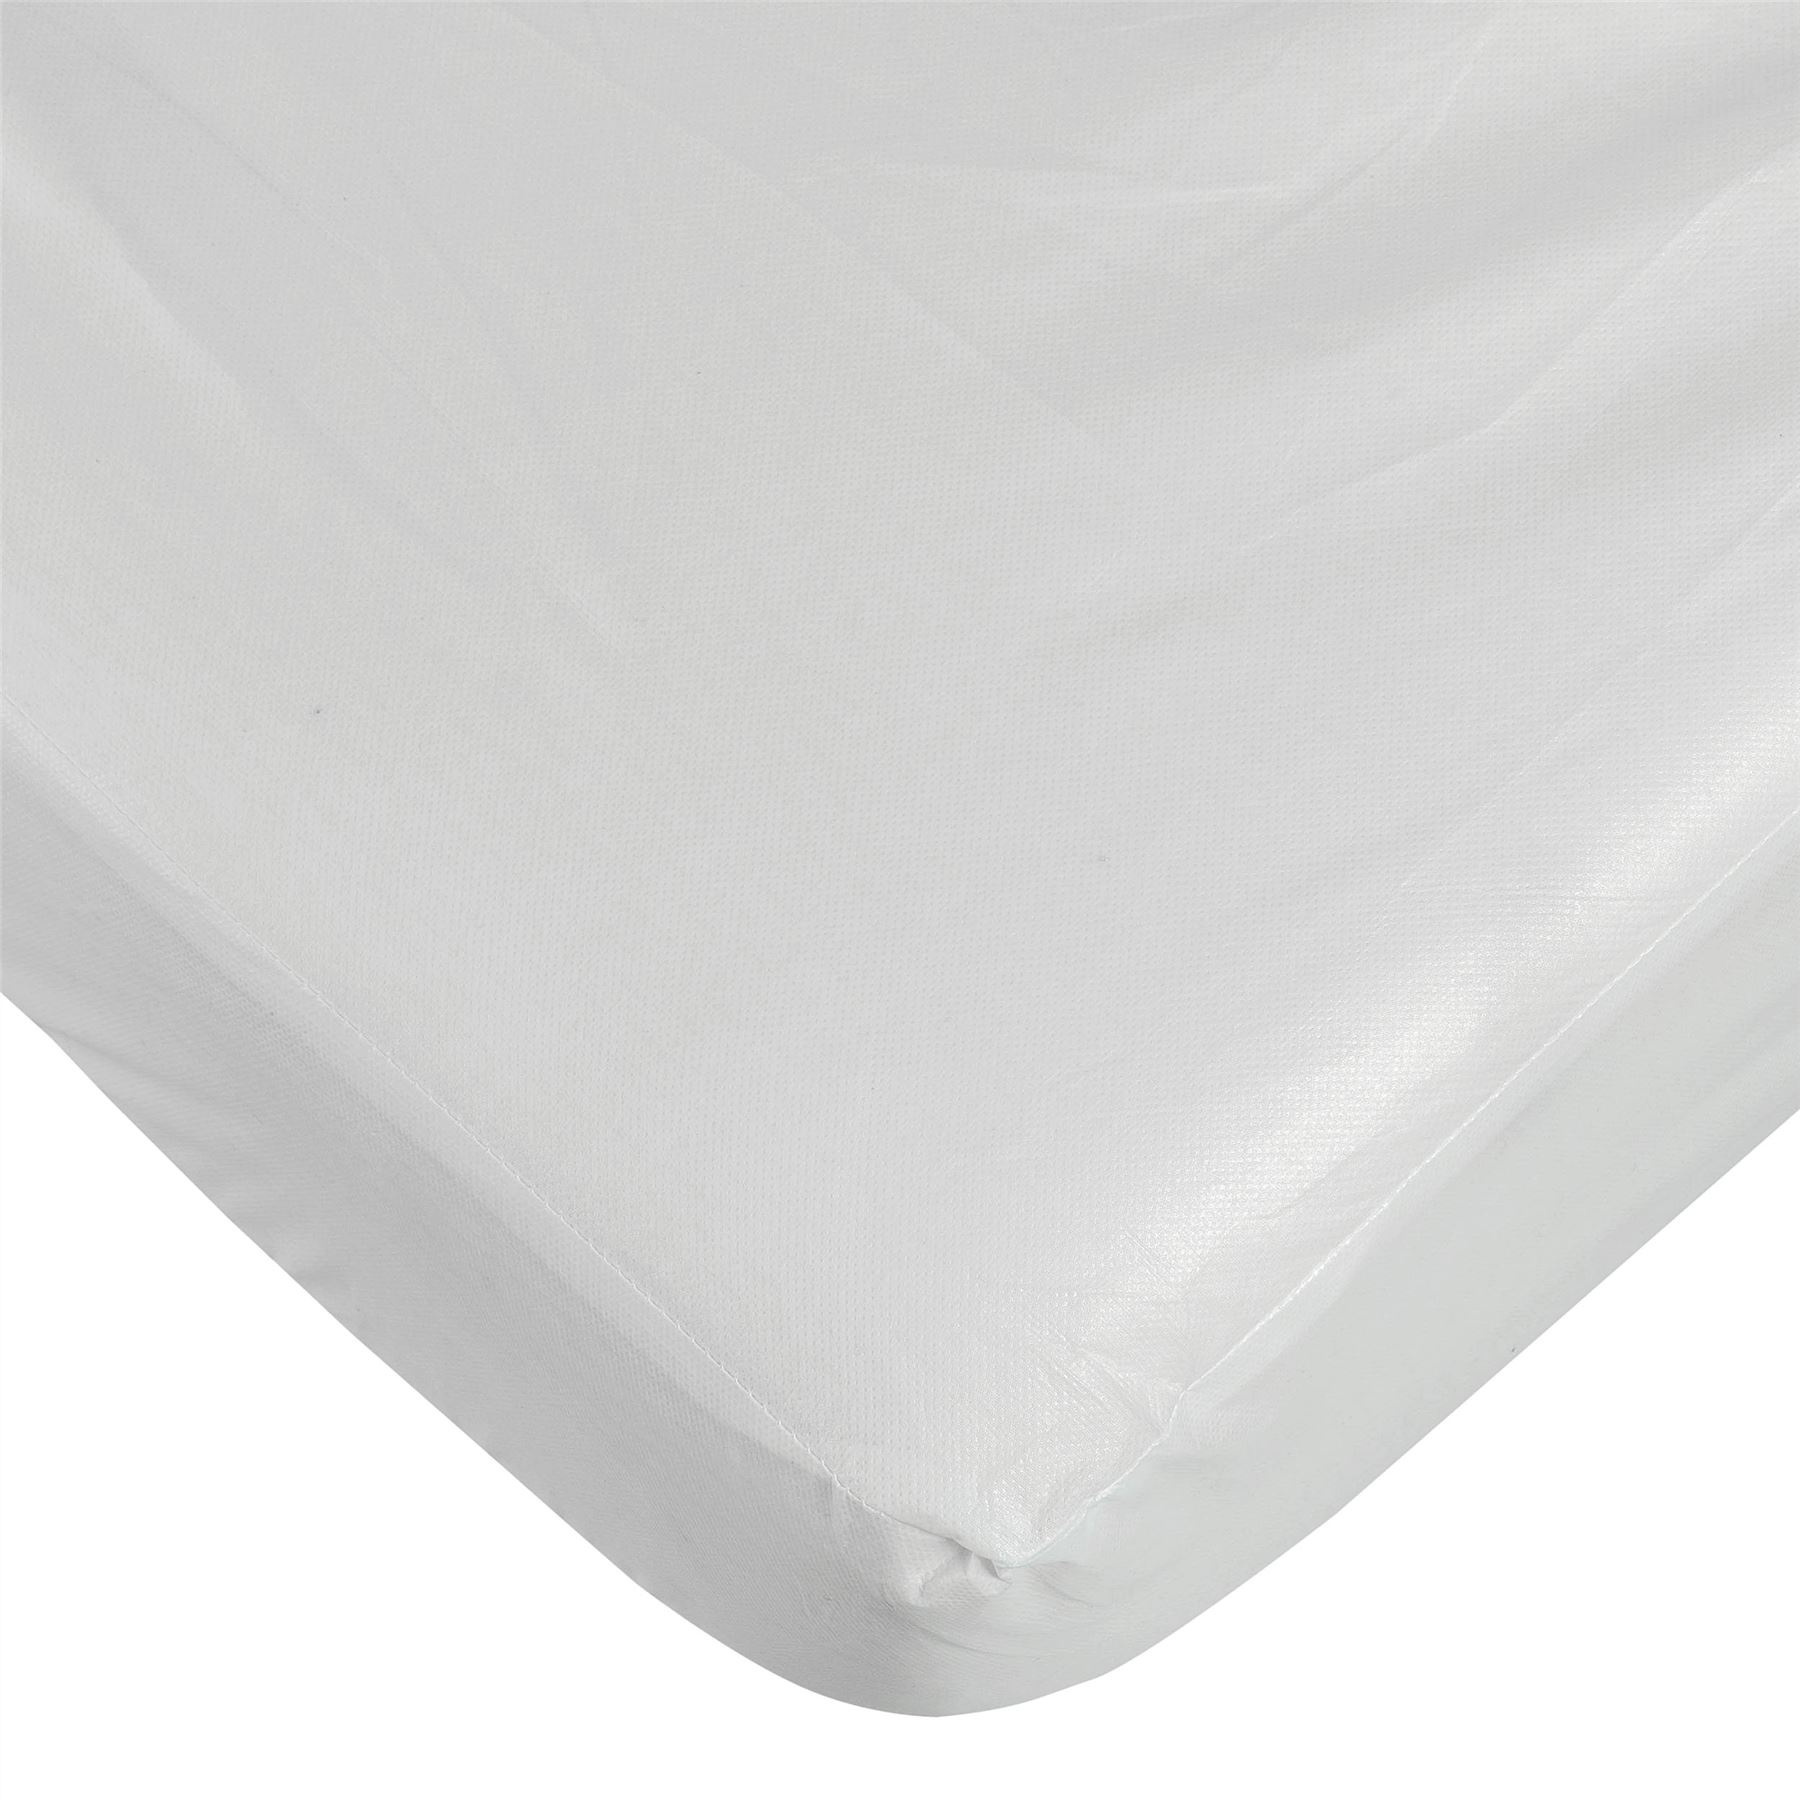 King Single Mattress Protector Polypropylene Waterproof Mattress Protector Single